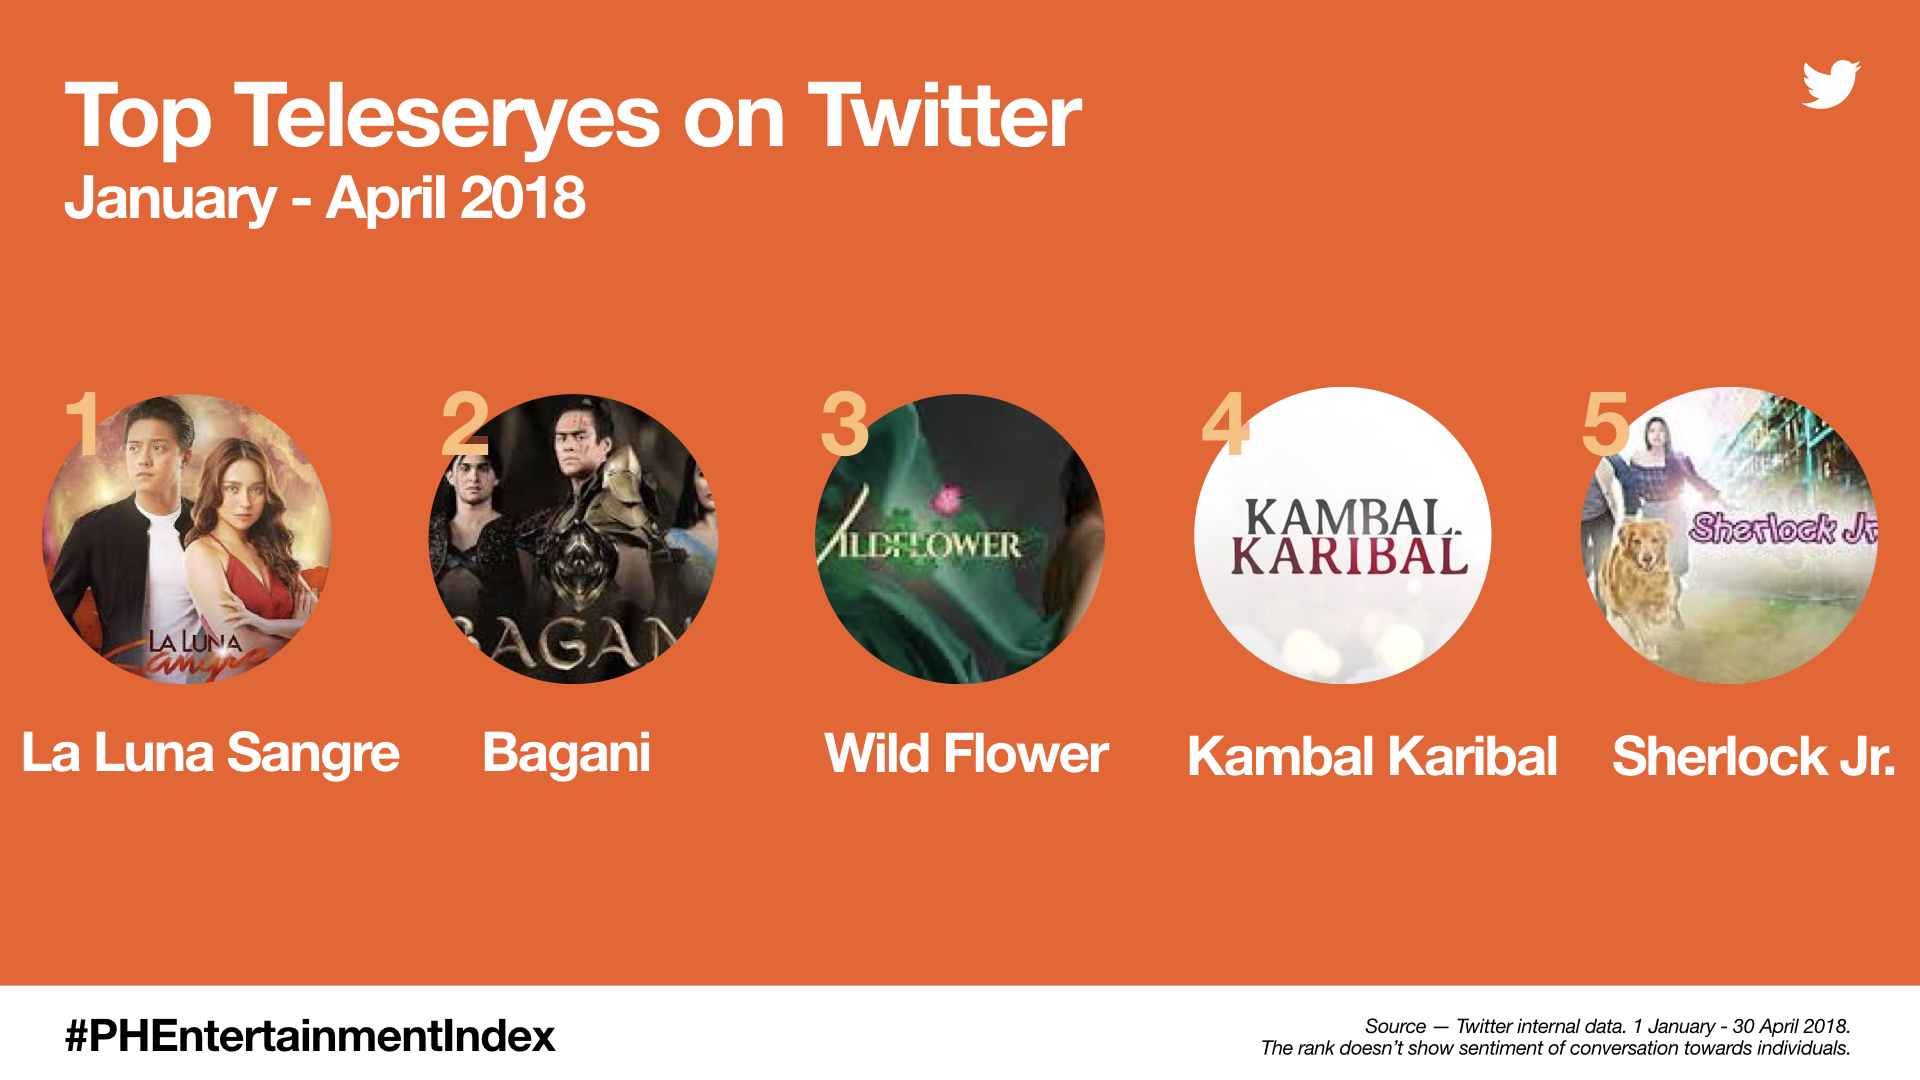 Top Teleseryes on Twitter